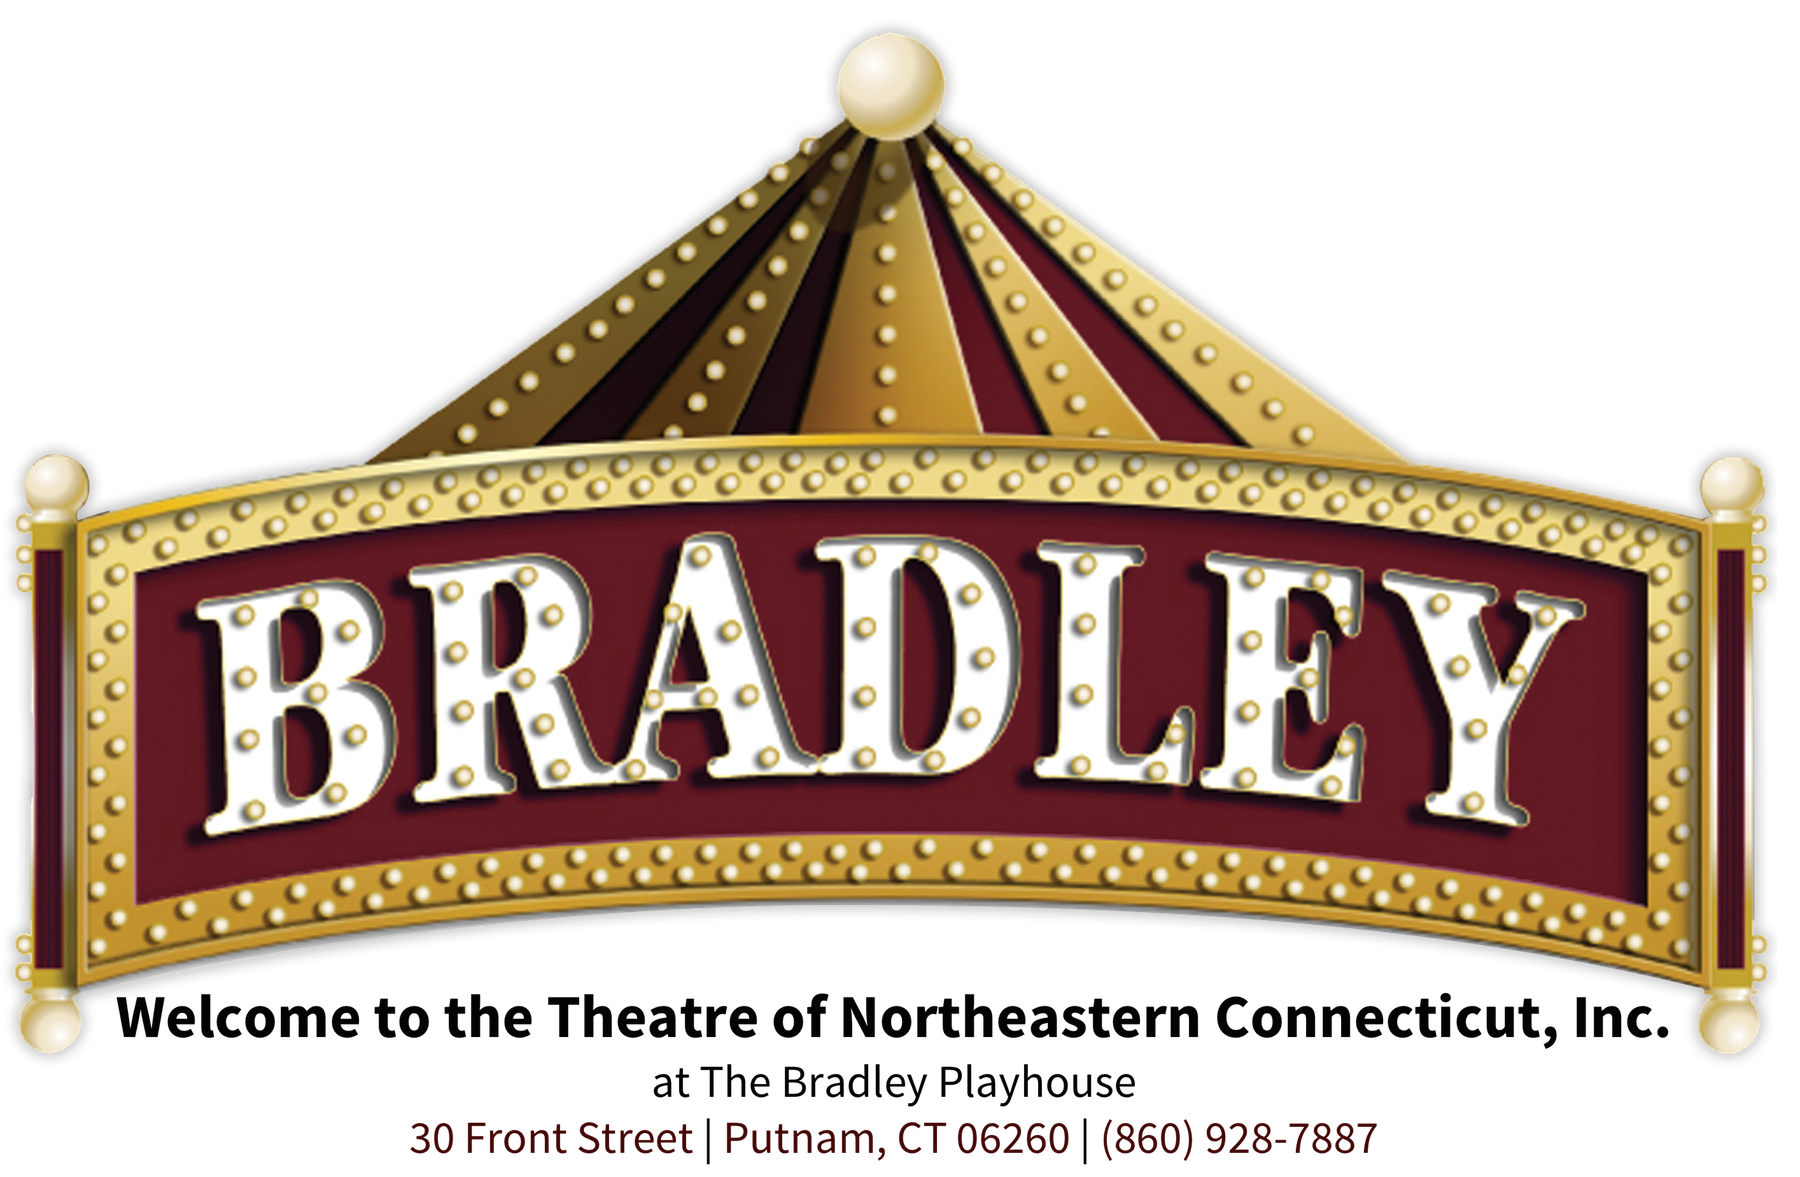 Bradley Playhouse – TNECT (Theatre of Northeastern CT)